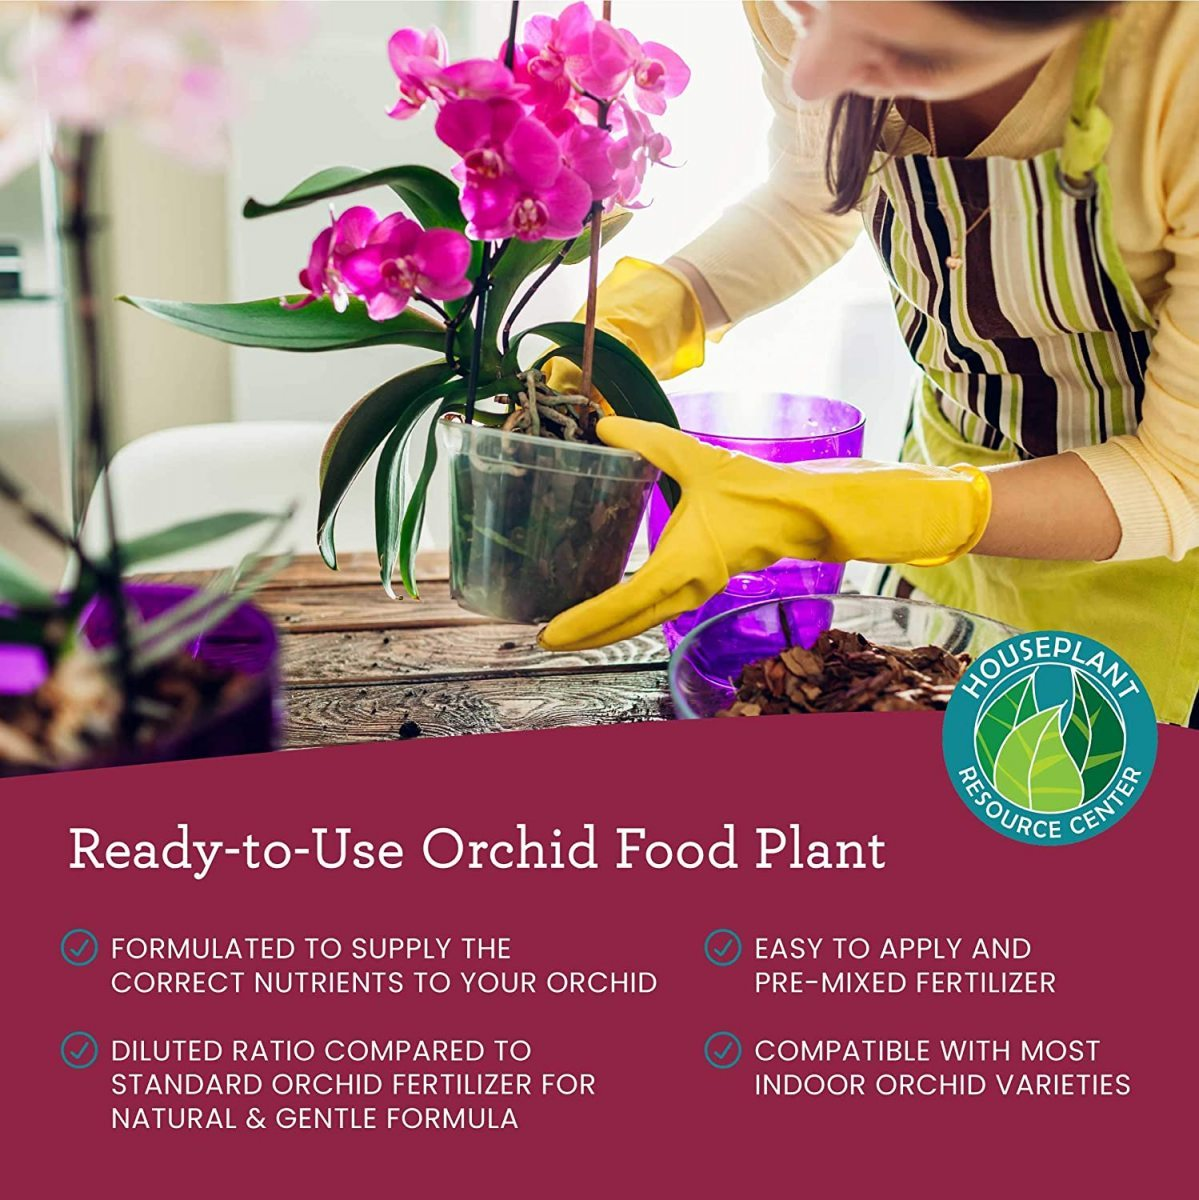 Orchid-Food-Graphic-1